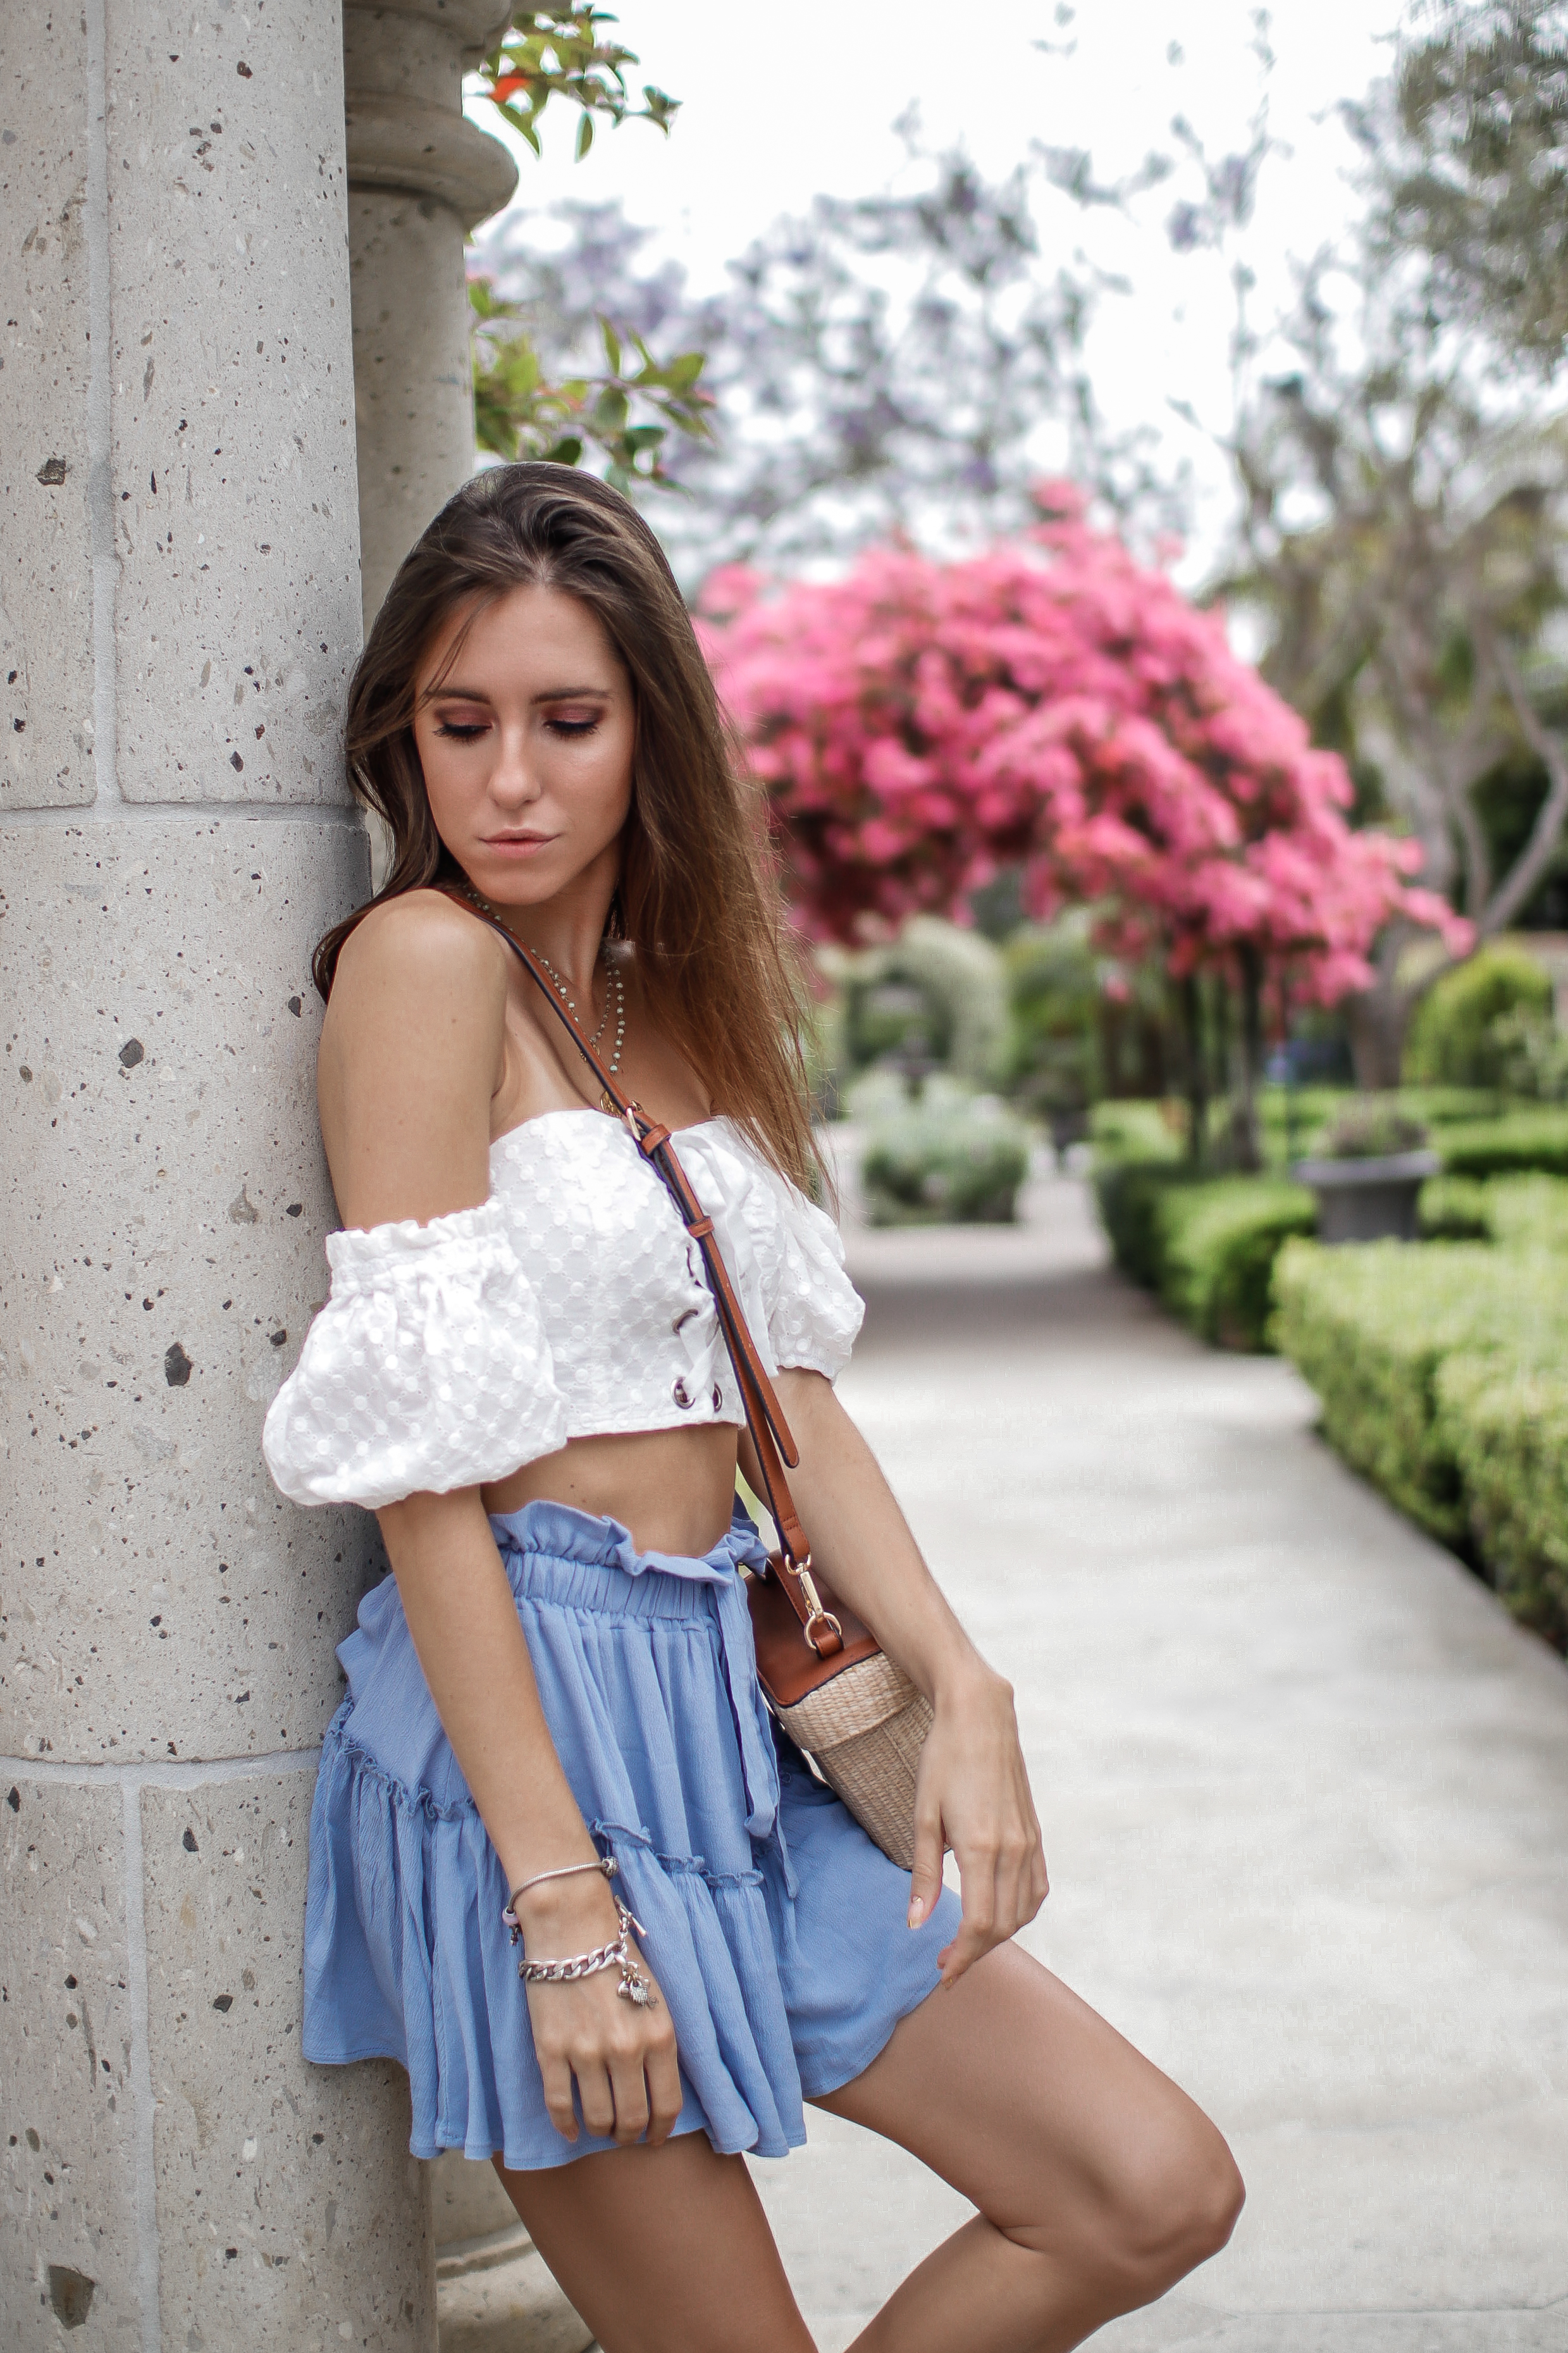 The Hungarian Brunette - Outfit Inspo: Picnic b*tch vibes